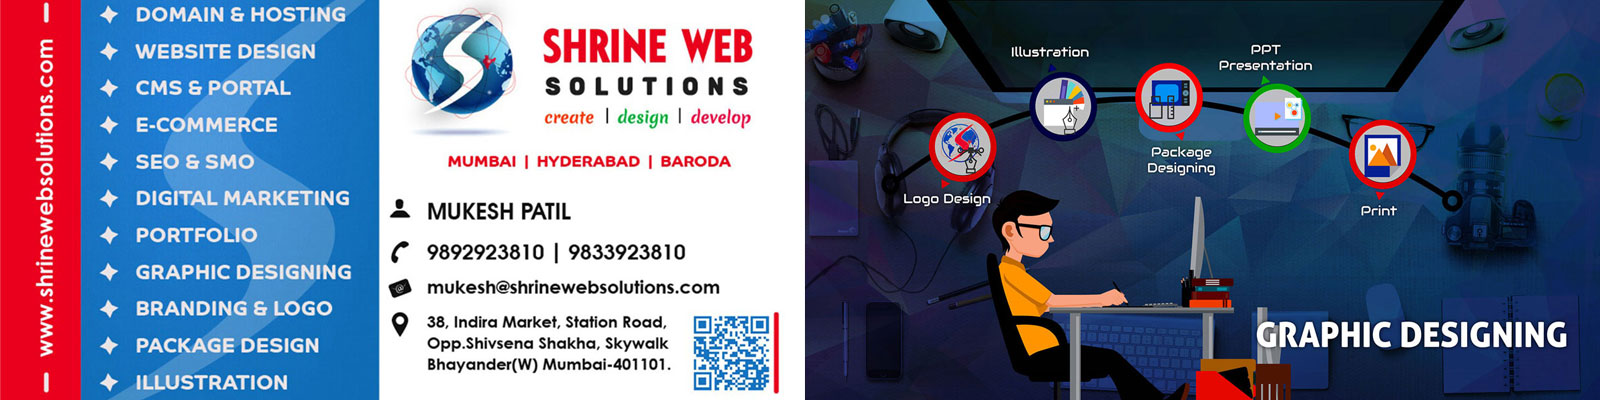 shrinewebsolutions3